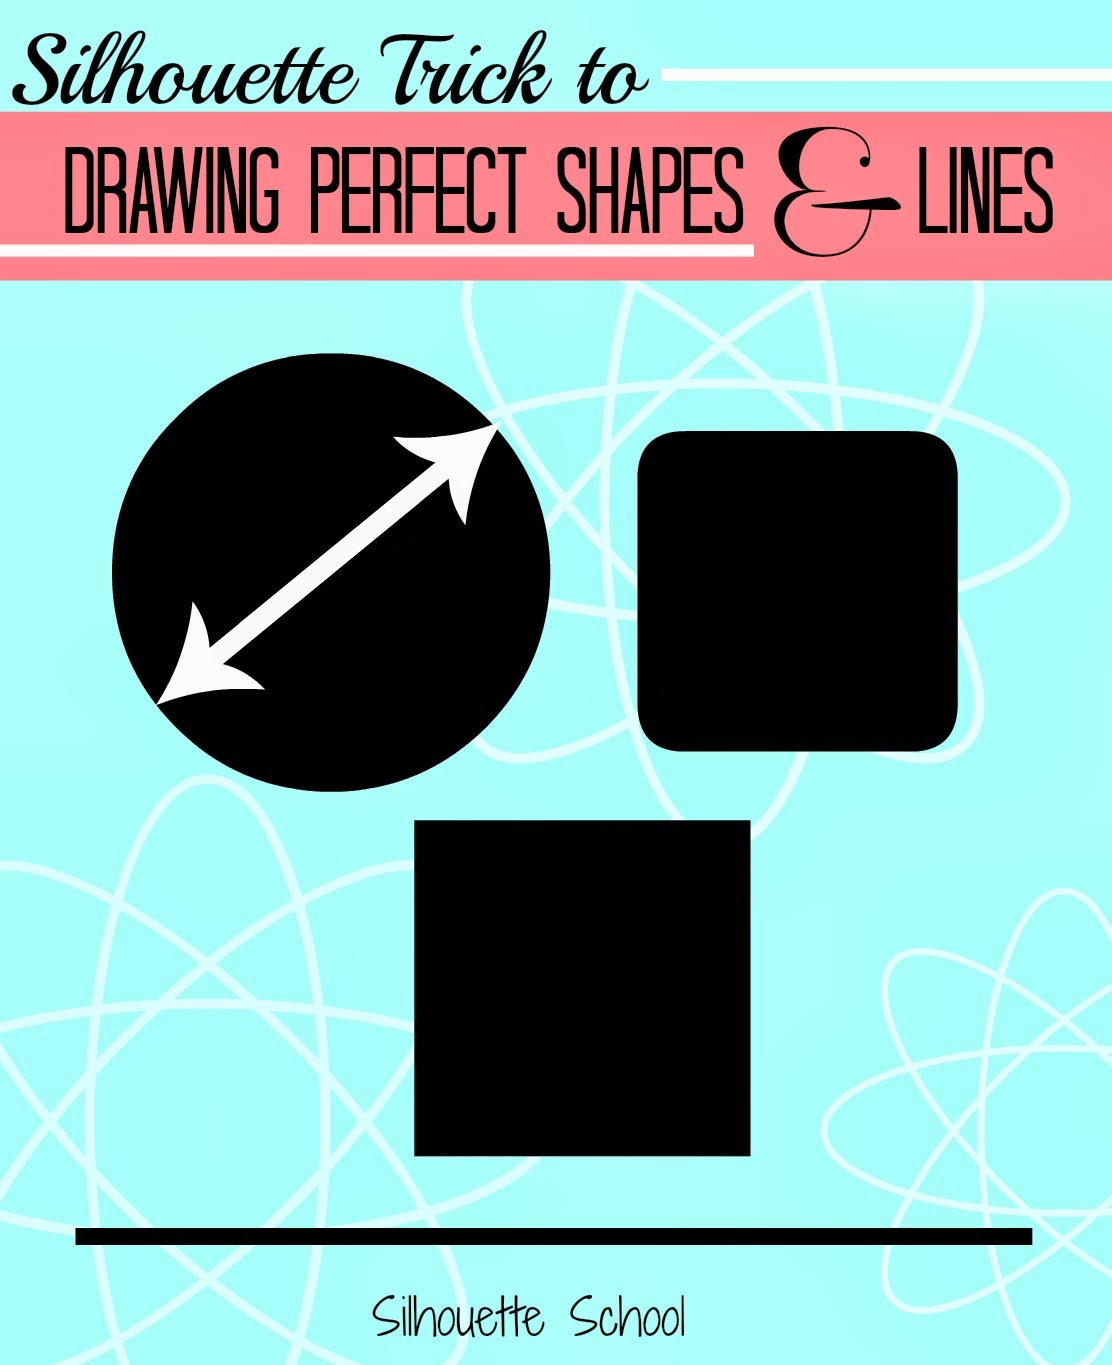 Draw, perfect, circle, square, straight line, Silhouette Studio